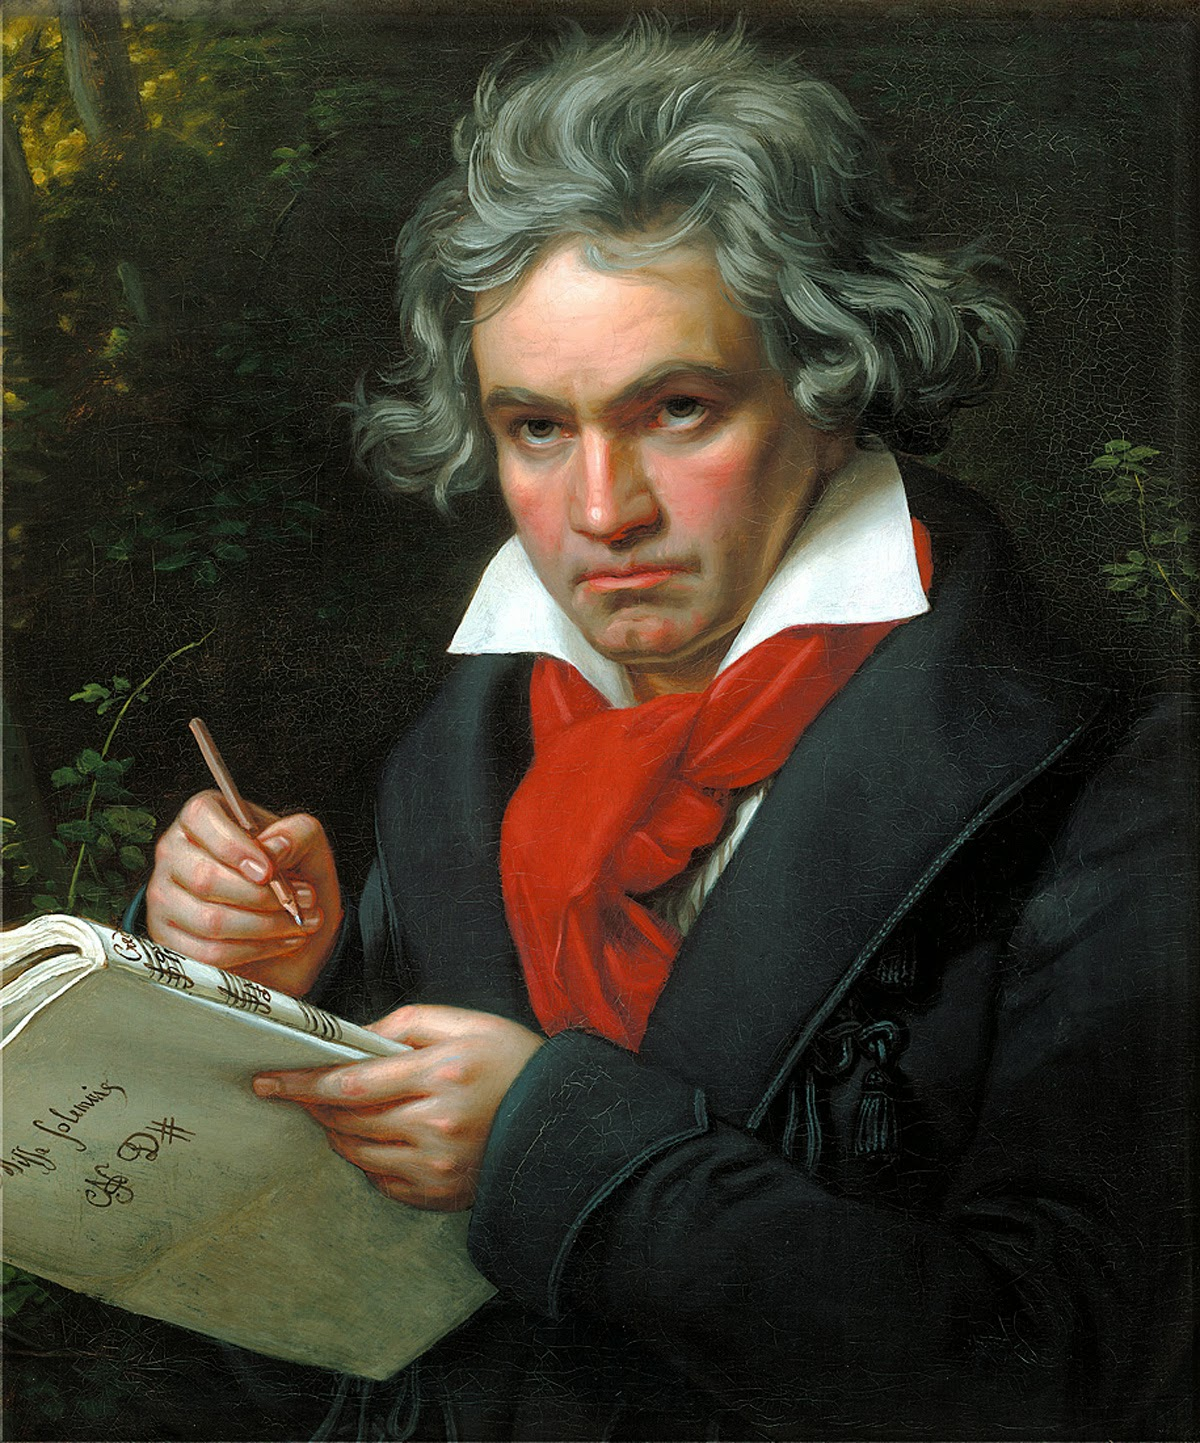 The 15 Greatest Classical Composers Of All Time - Ludwig van Beethoven (1770-1827)